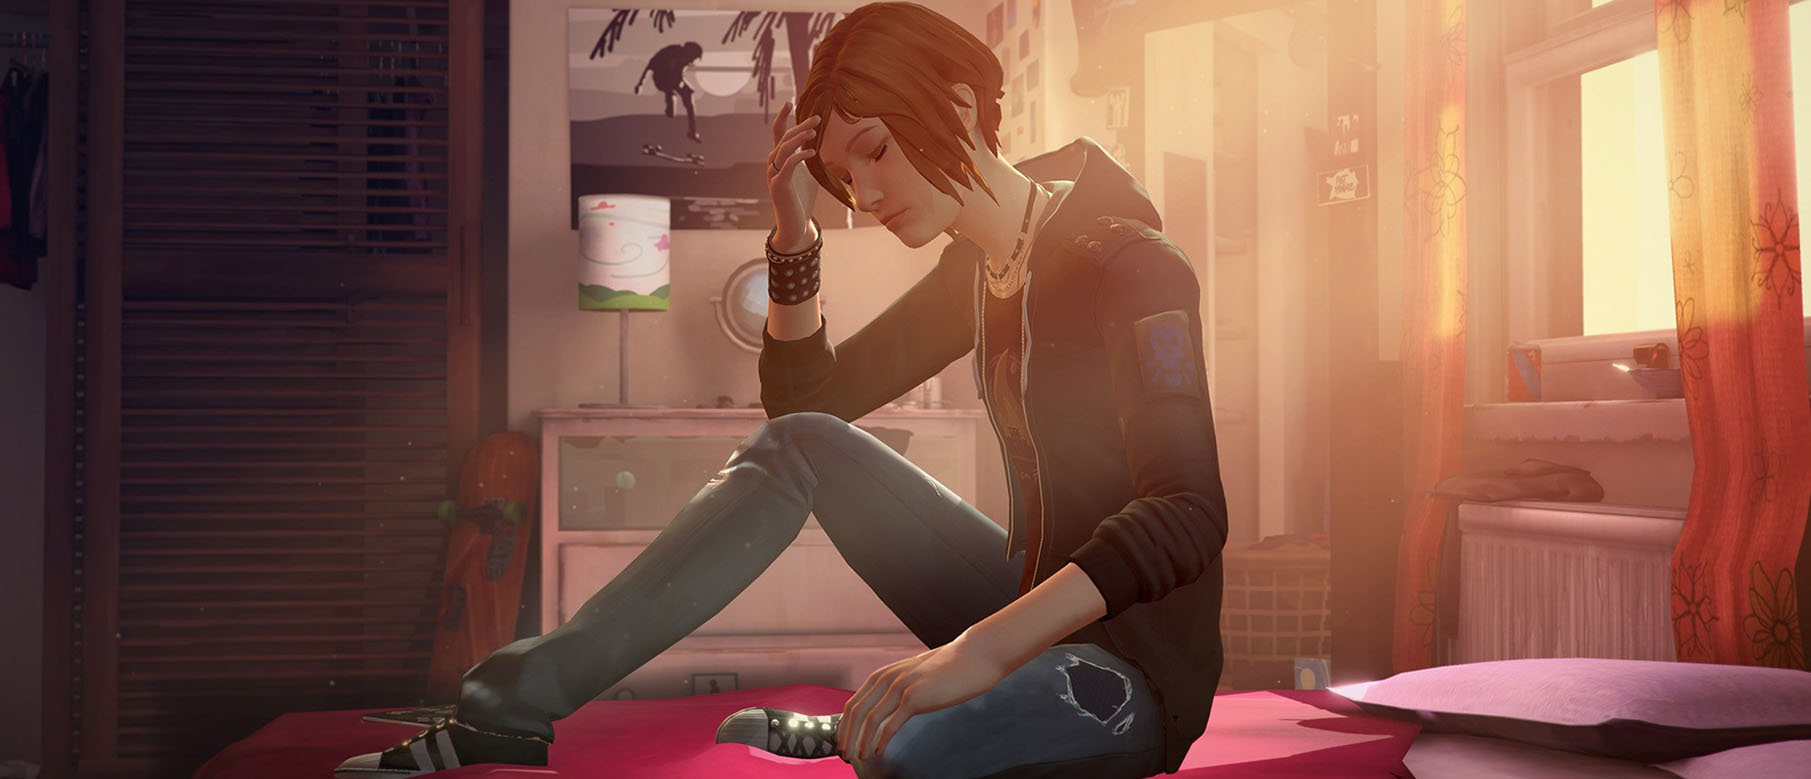 Изображение к Около 20 минут геймплея Life is Strange: Before the Storm